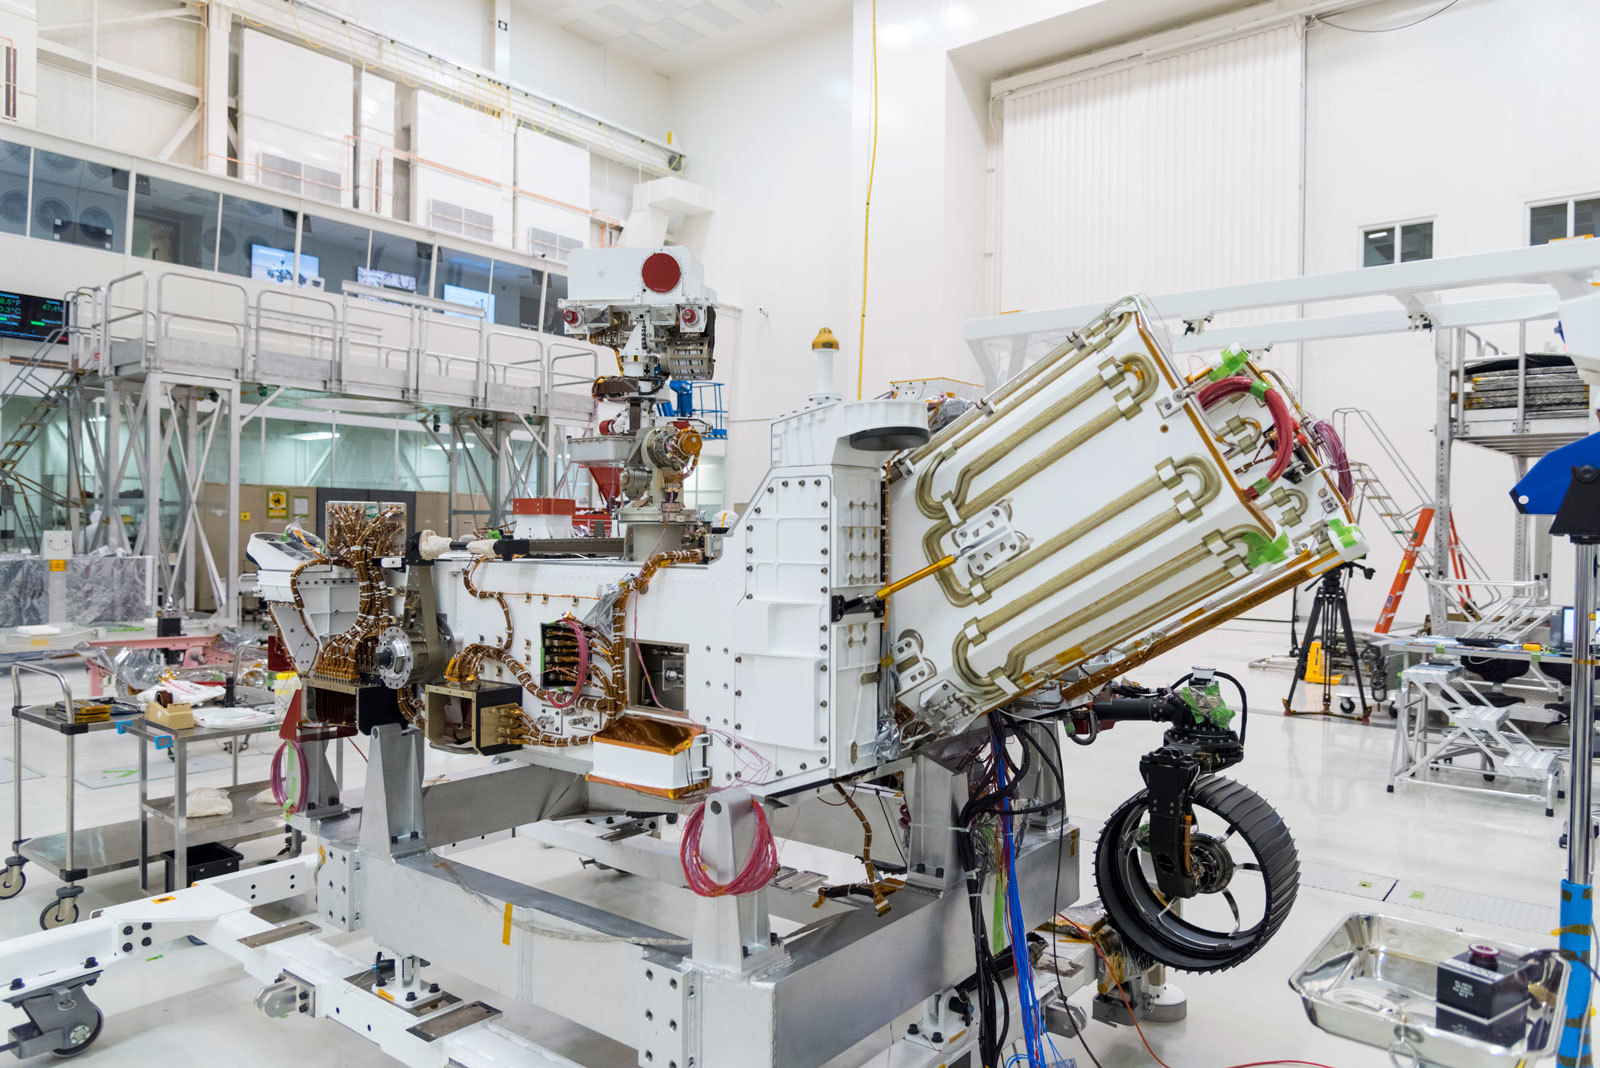 The electricity for NASA's Mars 2020 rover is provided by a power system called a Multi-Mission Radioisotope Thermoelectric Generator, or MMRTG. The MMRTG will be inserted into the aft end of the rover between the panels with gold tubing visible at the rear, which are called heat exchangers.